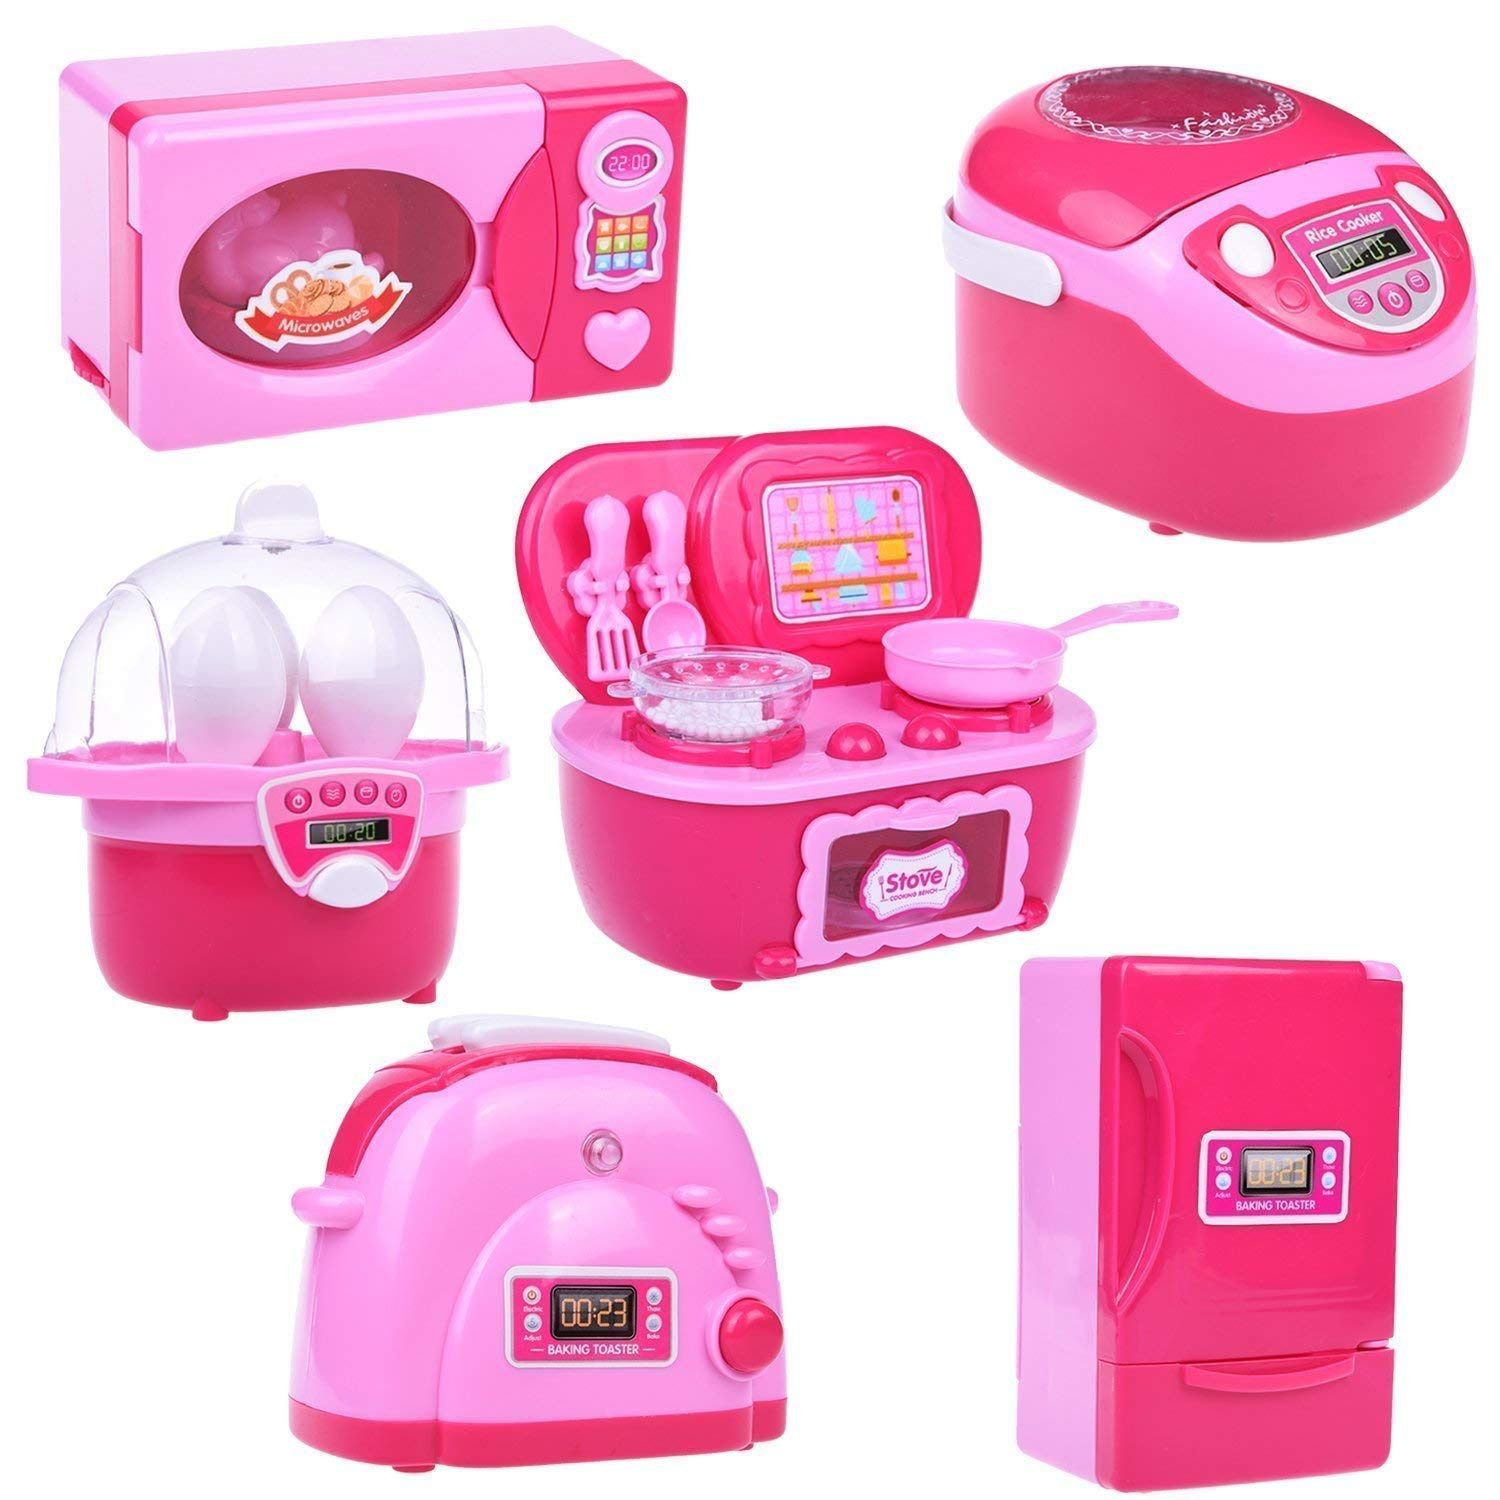 Amazon Kitchen Appliances Discount Kitchens Melbourne Appliance Toys For Girls Just 7 47 W Code Reg 14 95 As Of 11 2018 4 50 Pm Cst